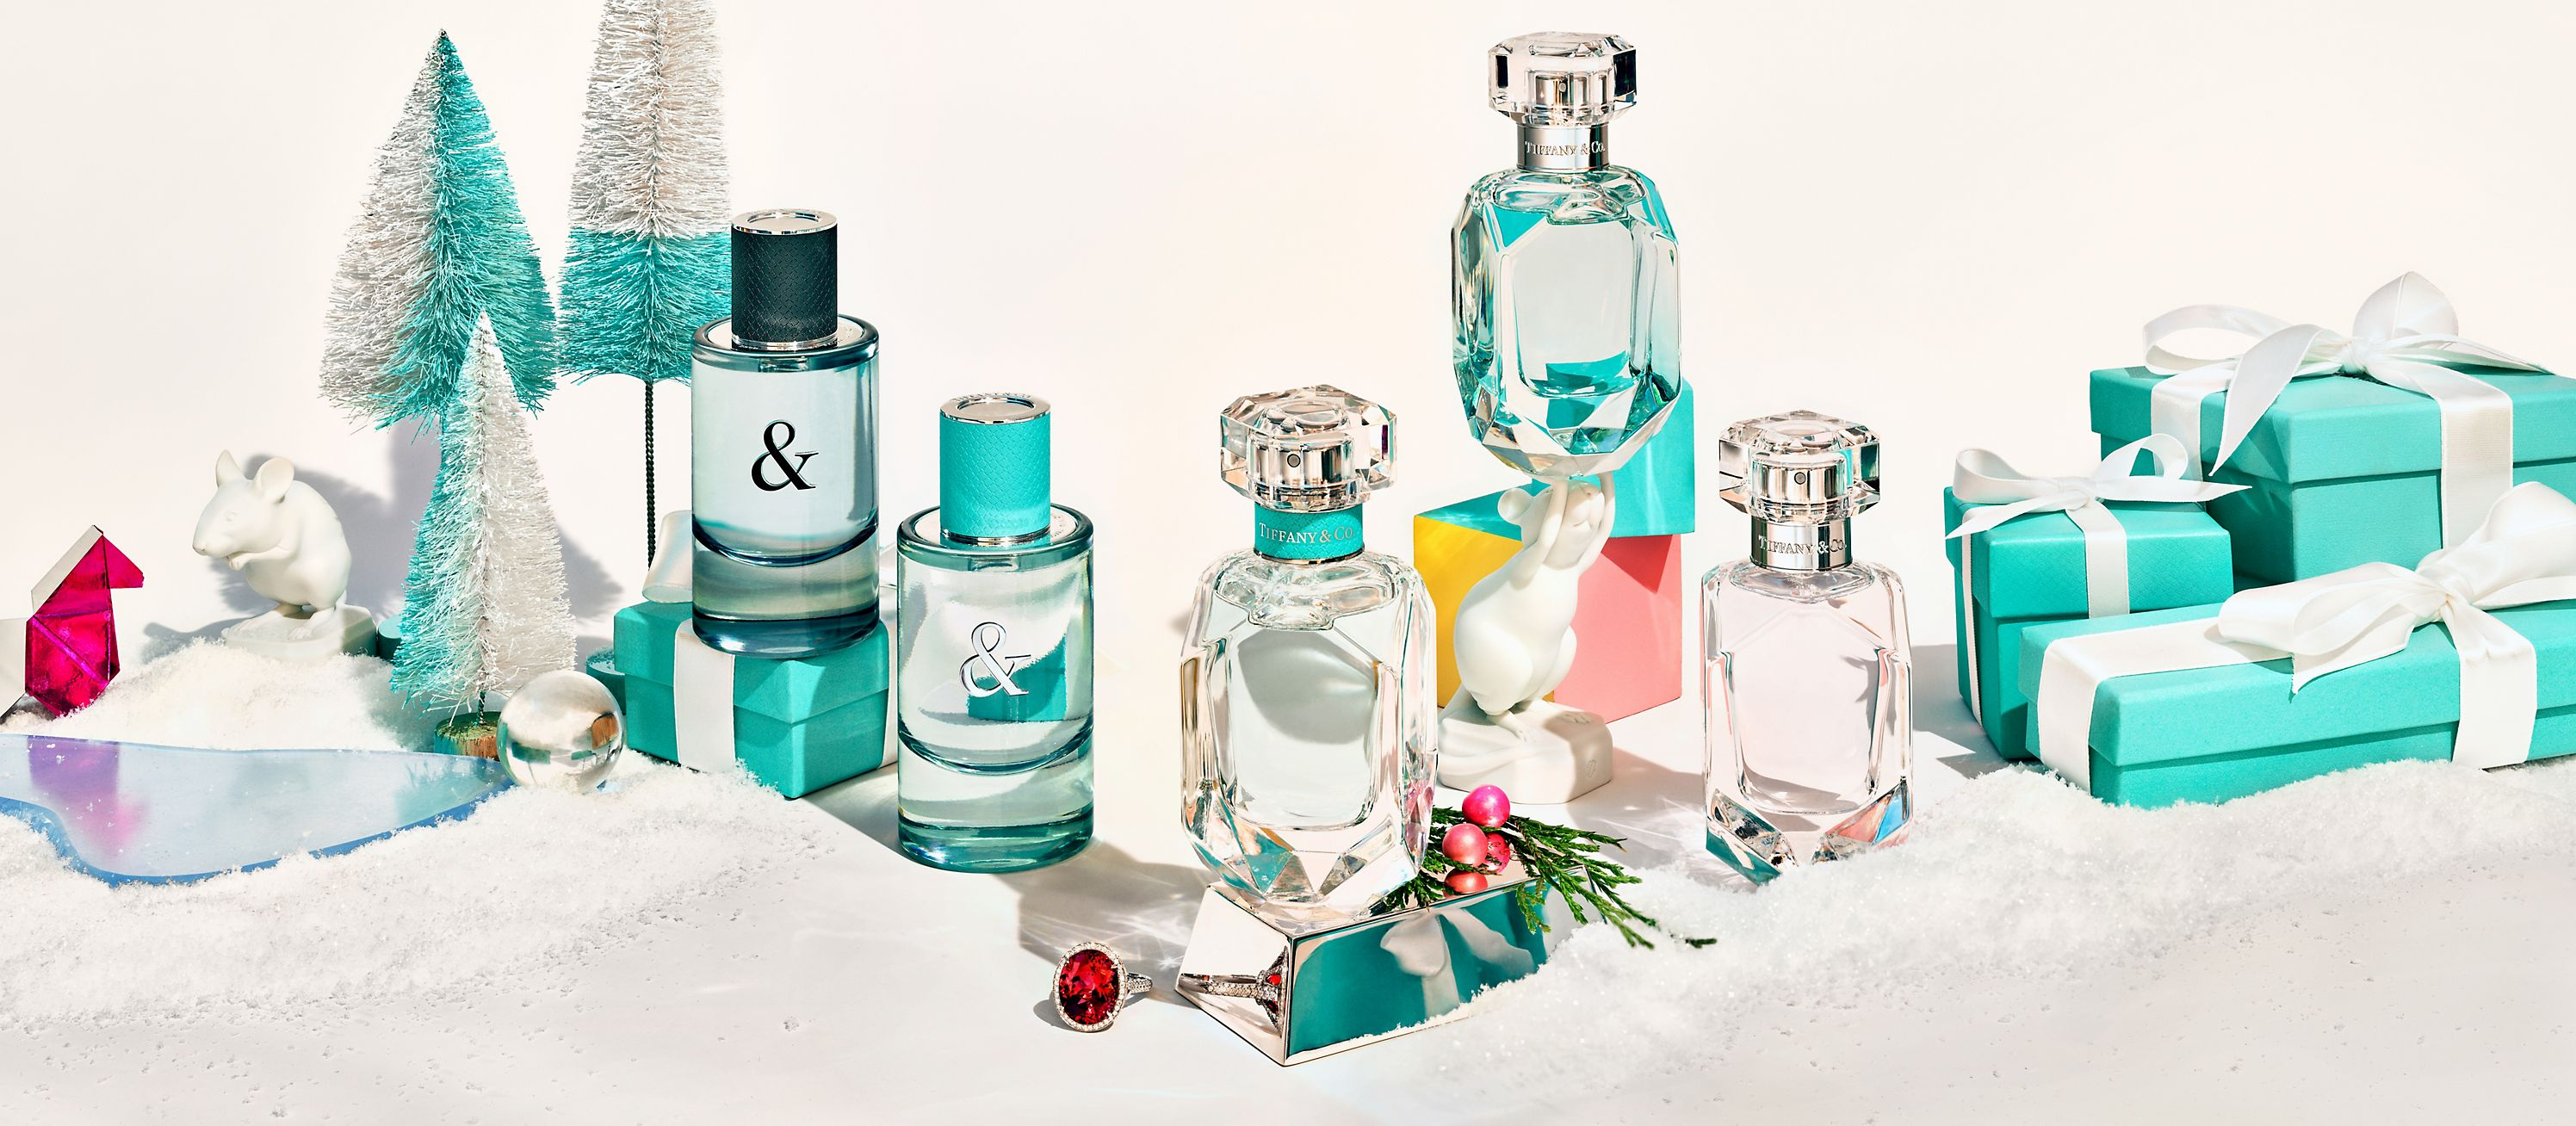 Tiffany & Co. Fragrance